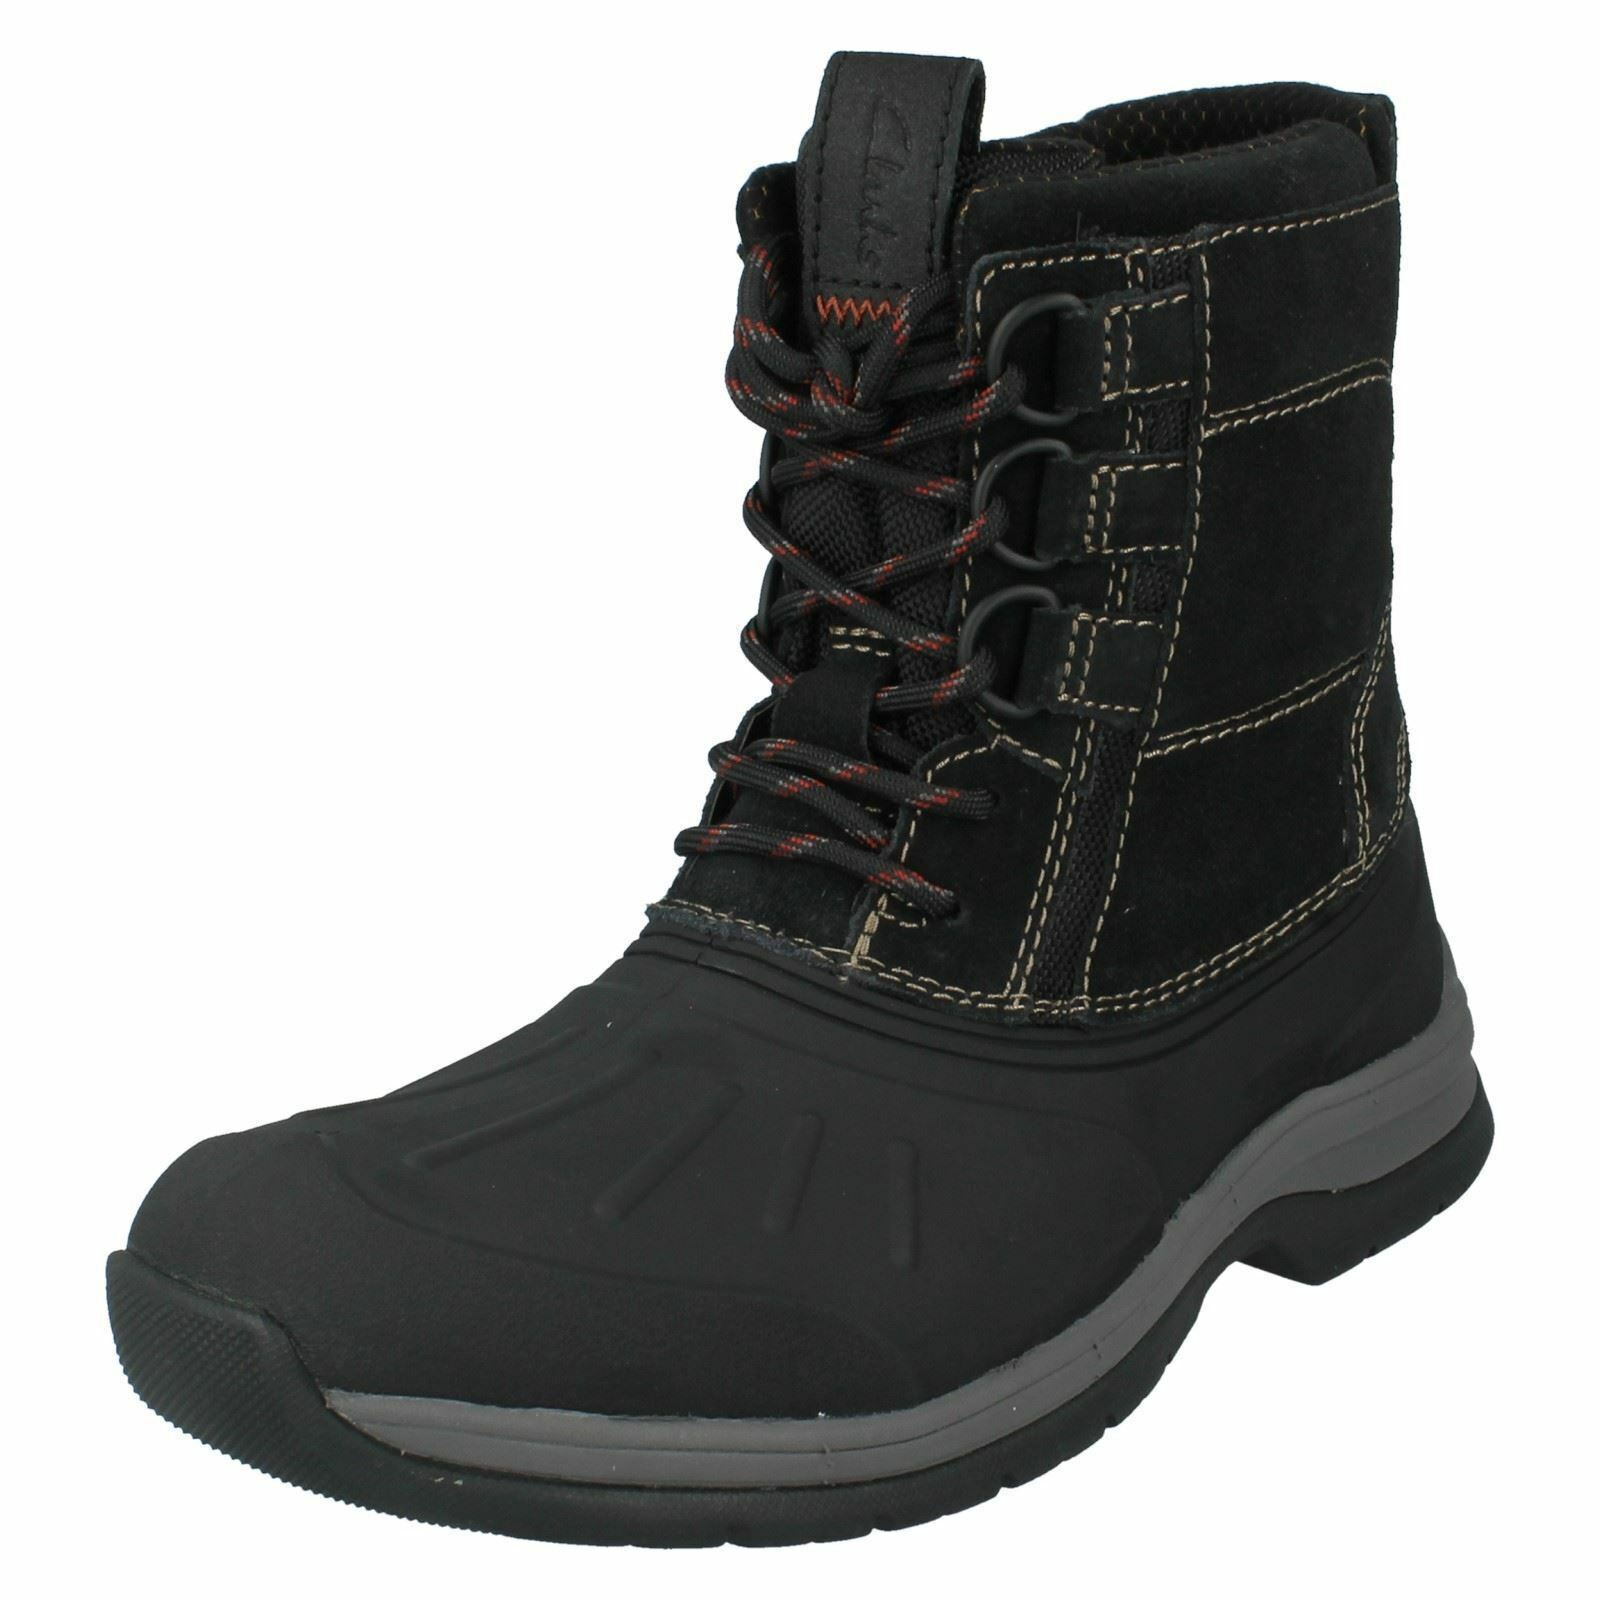 Clarks Mens Outdoor Boots Nashoba Summit